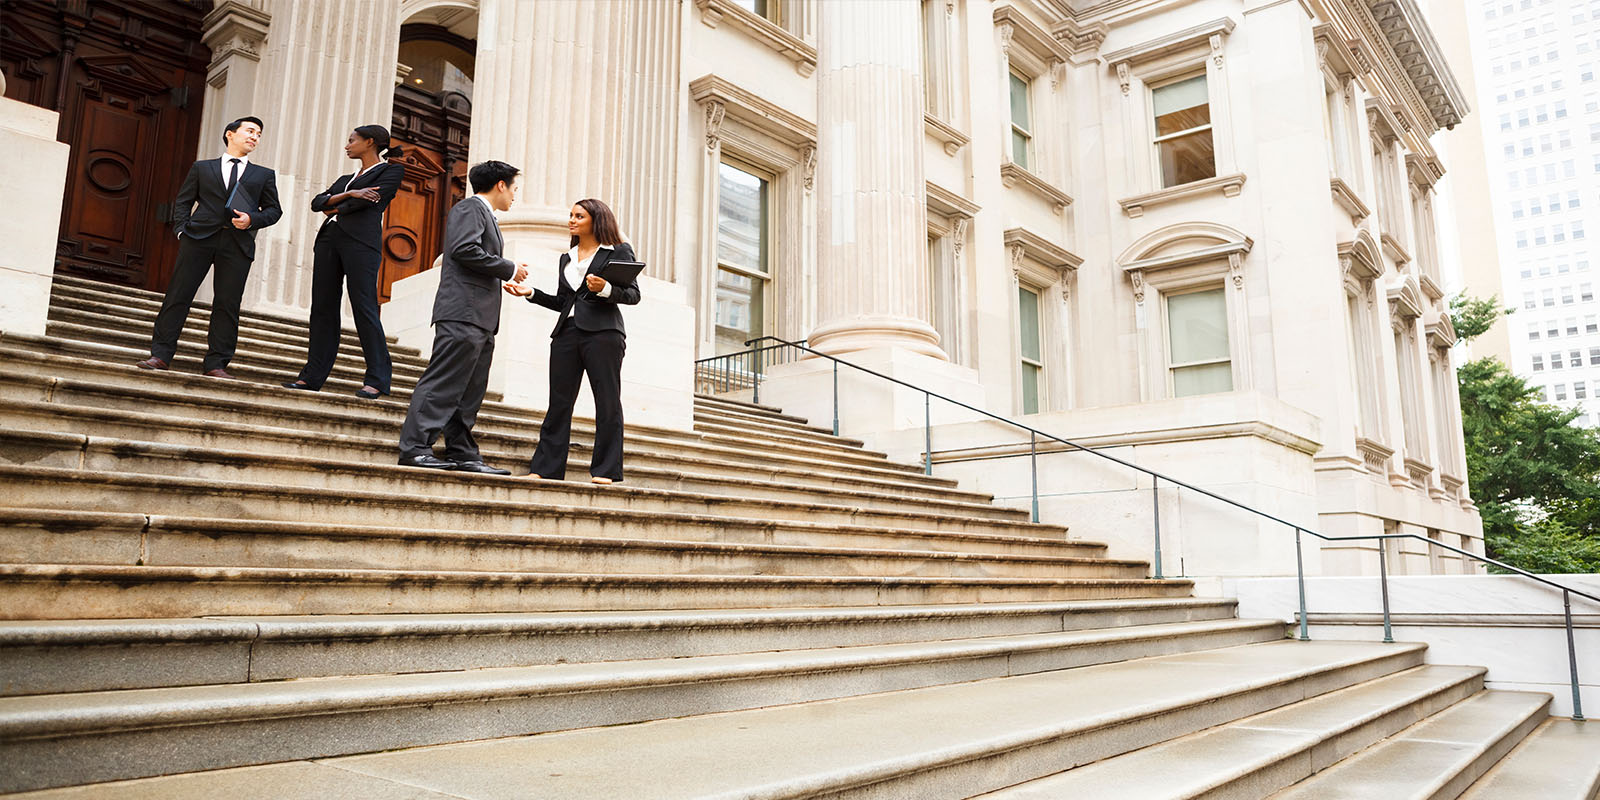 Four well dressed professionals in discussion on the exterior steps of a building